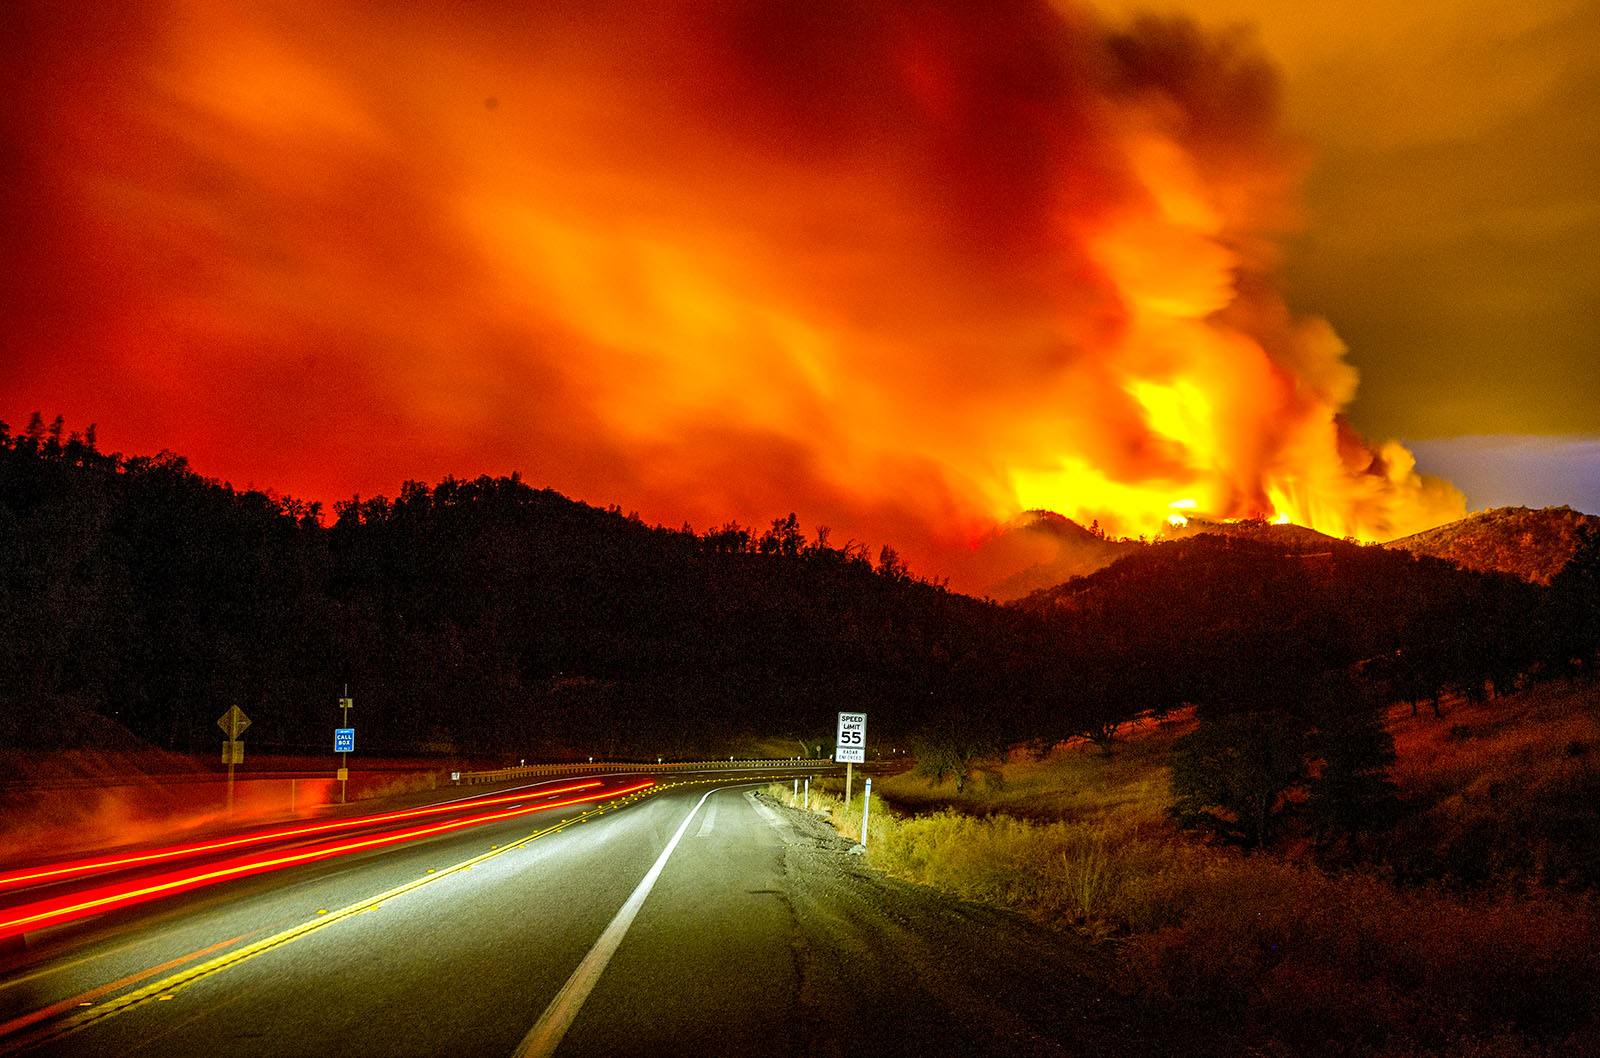 As Wildfires Get Costlier and Deadlier, Insurers and